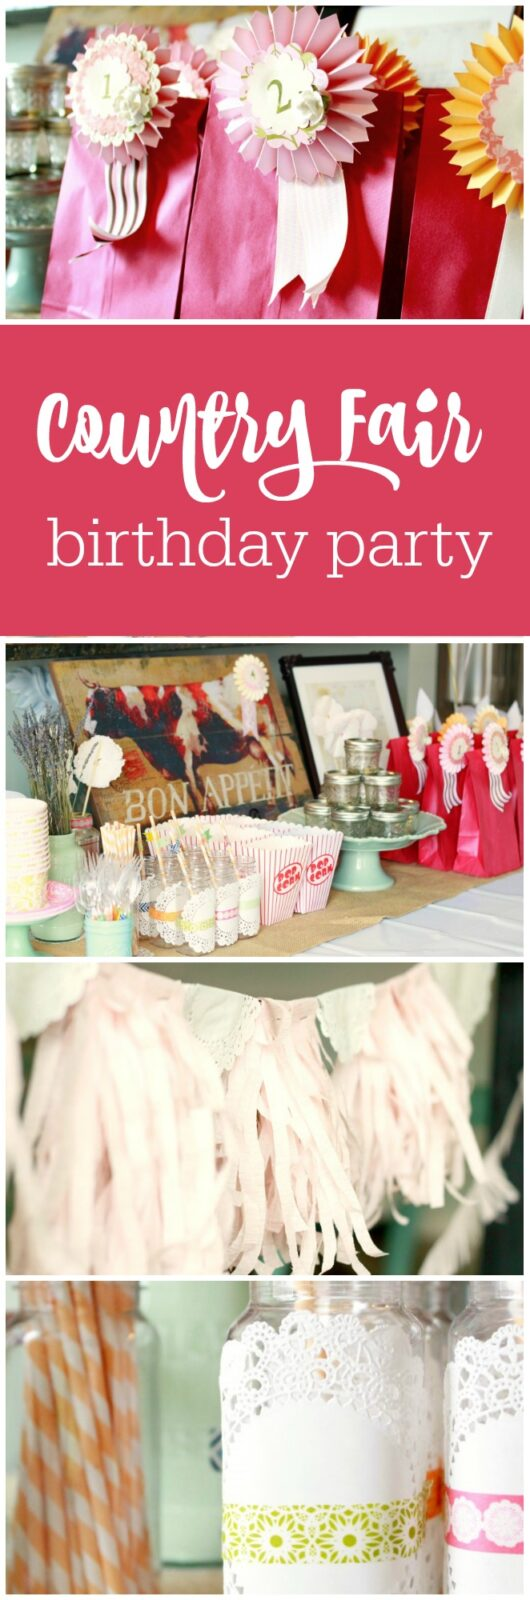 Country Fair 9th birthday day by The Crafty Woman featured on The Party Teacher